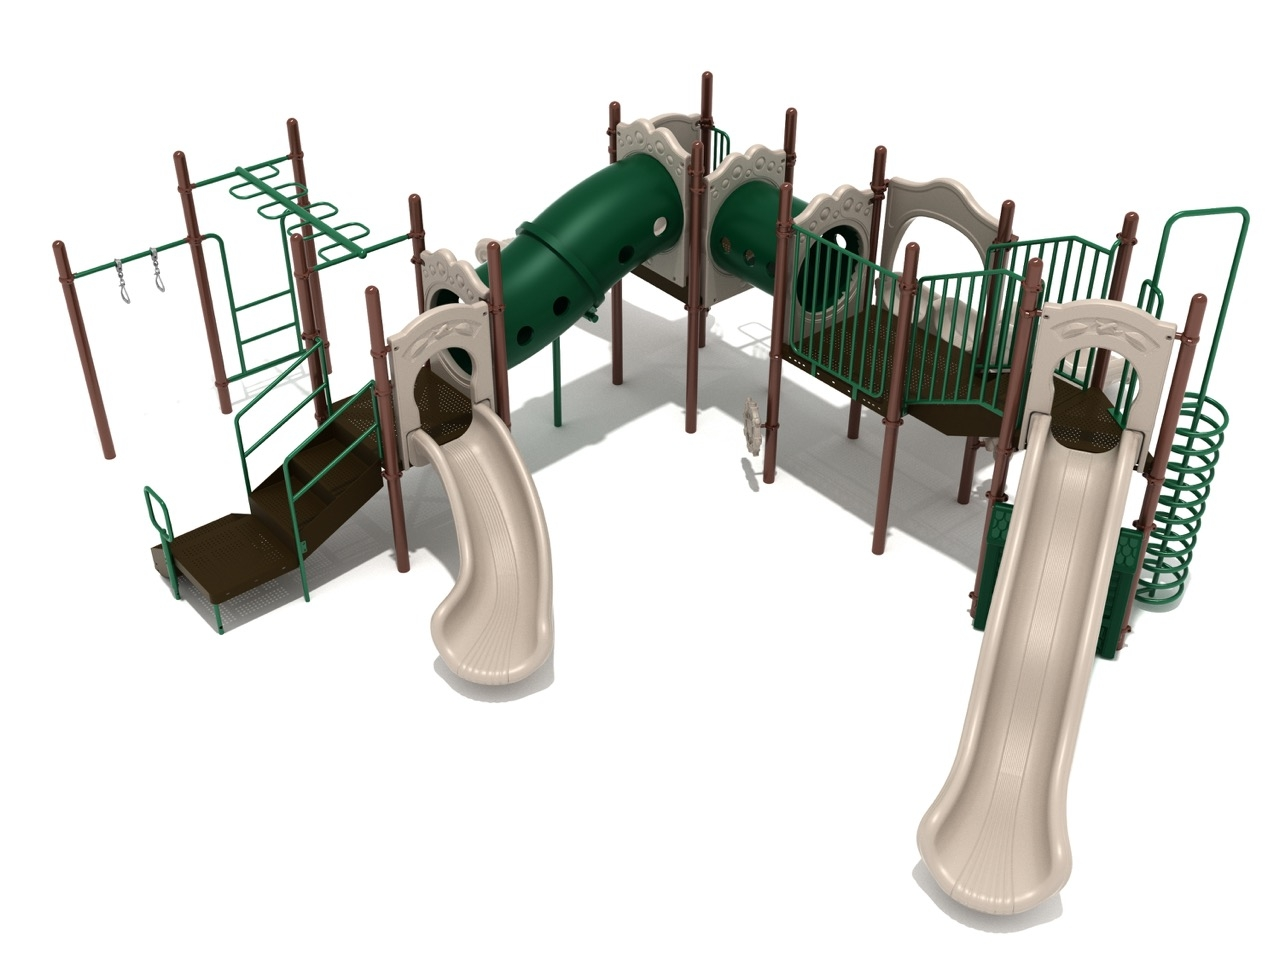 grand venetian commercial playground equipment system 2